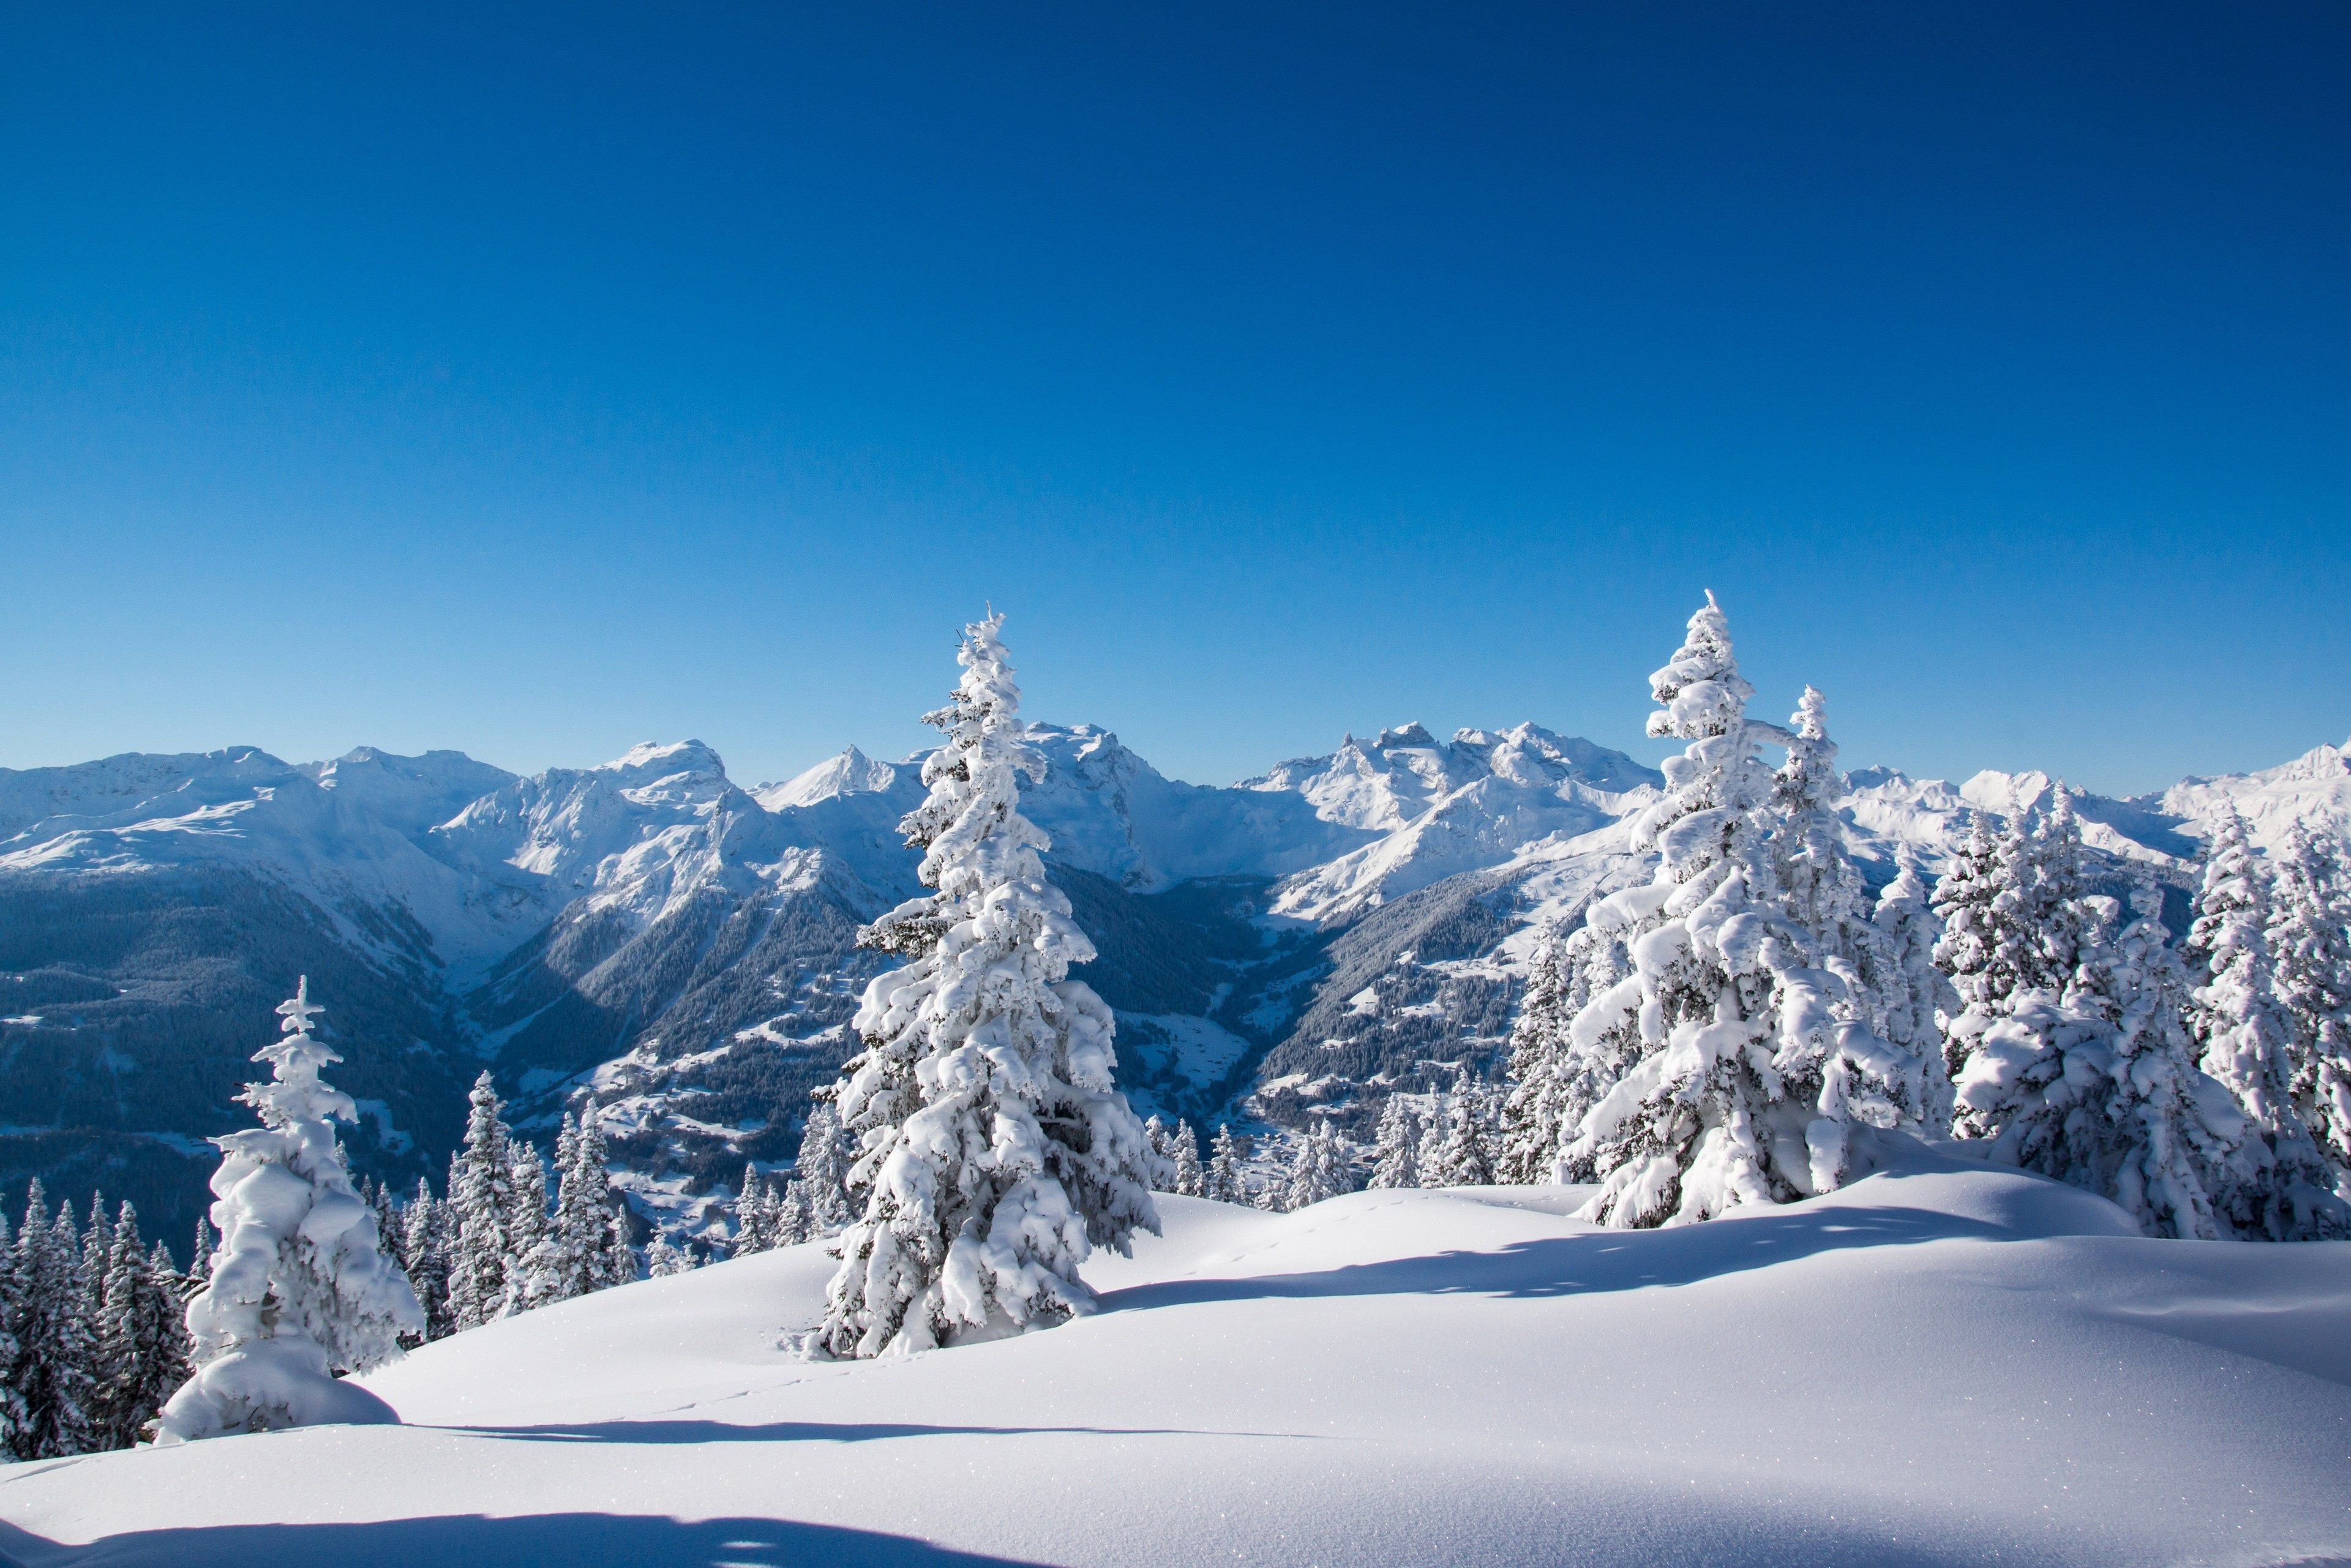 3840x2561 winter mountains 4k hd wallpaper for pc download